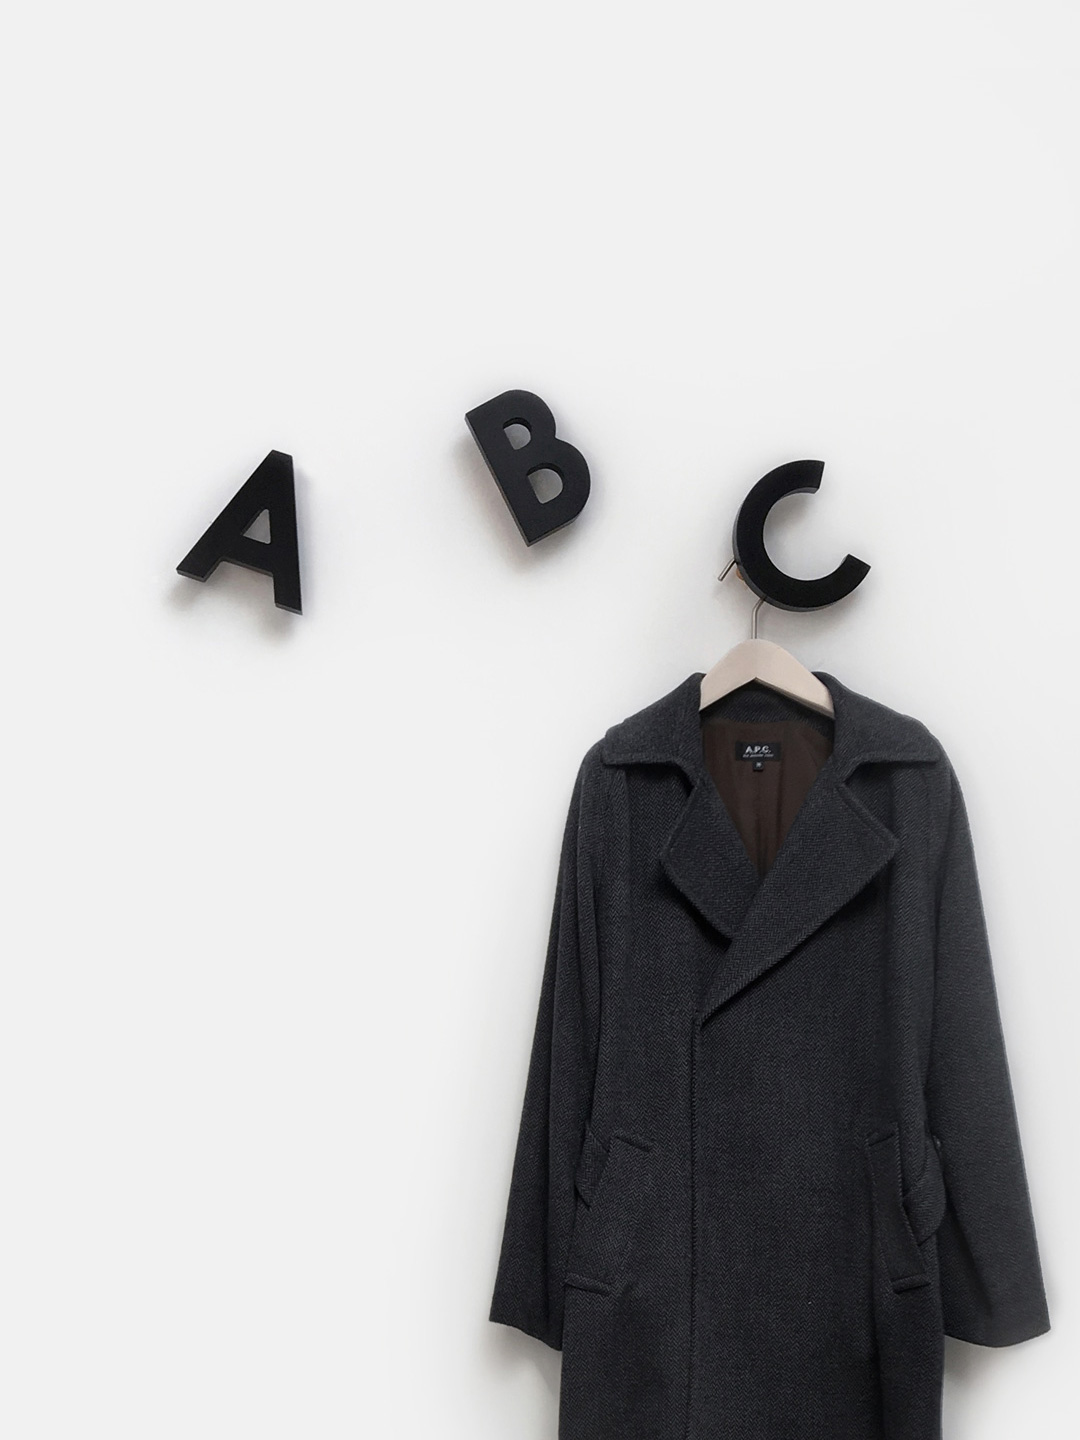 Alphabet Soup Wall hooks - ABC (Black)